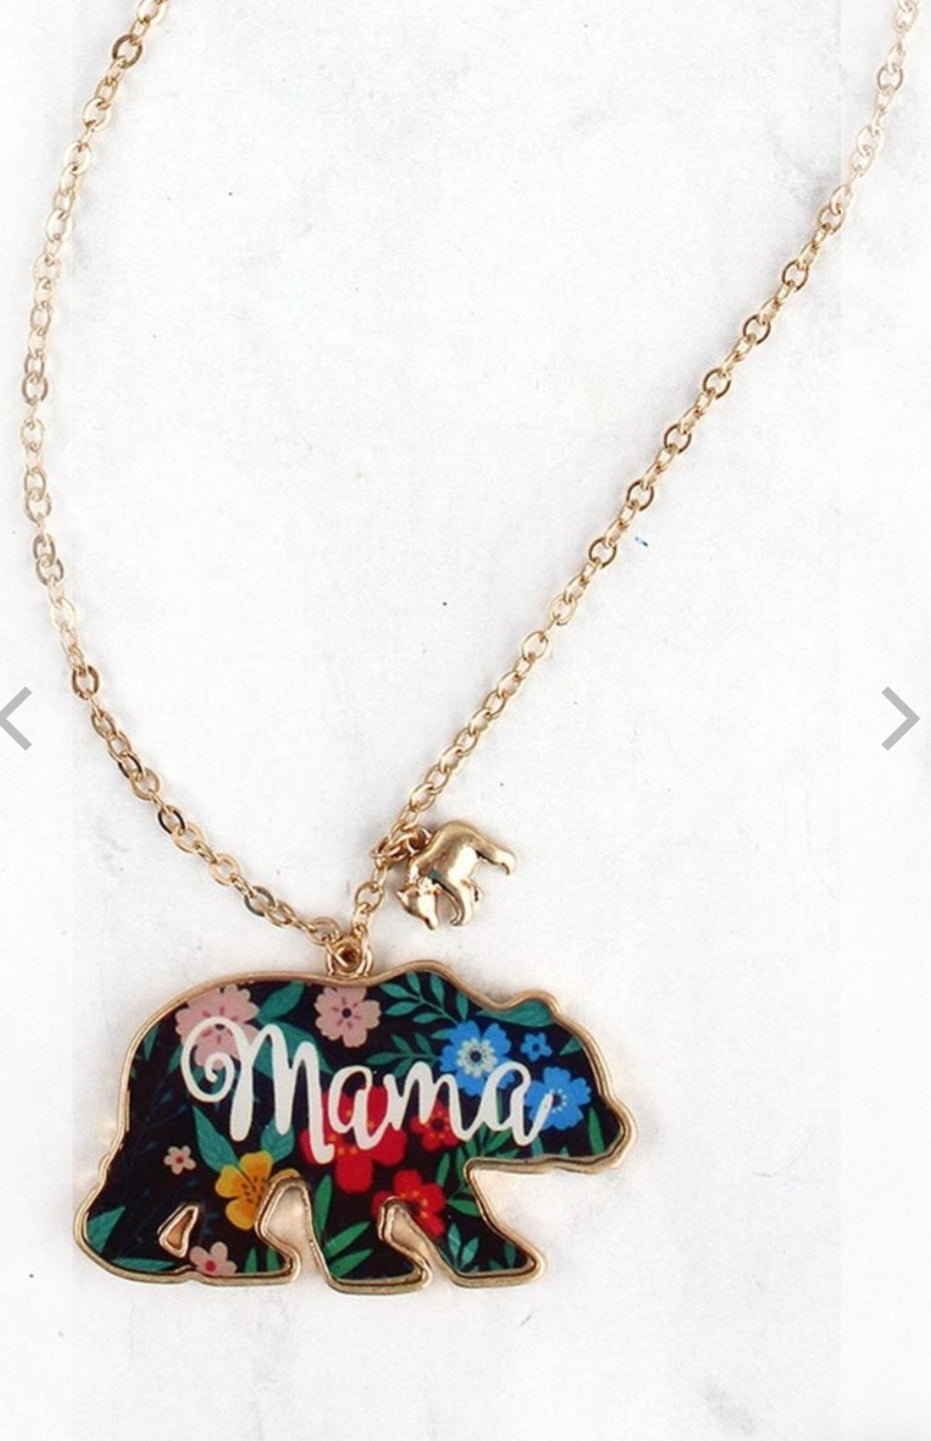 FLORAL MAMA BEAR PENDANT GOLDTONE NECKLACE-AVAILABLE FOR PRESALE UNTIL APRIL 22ND